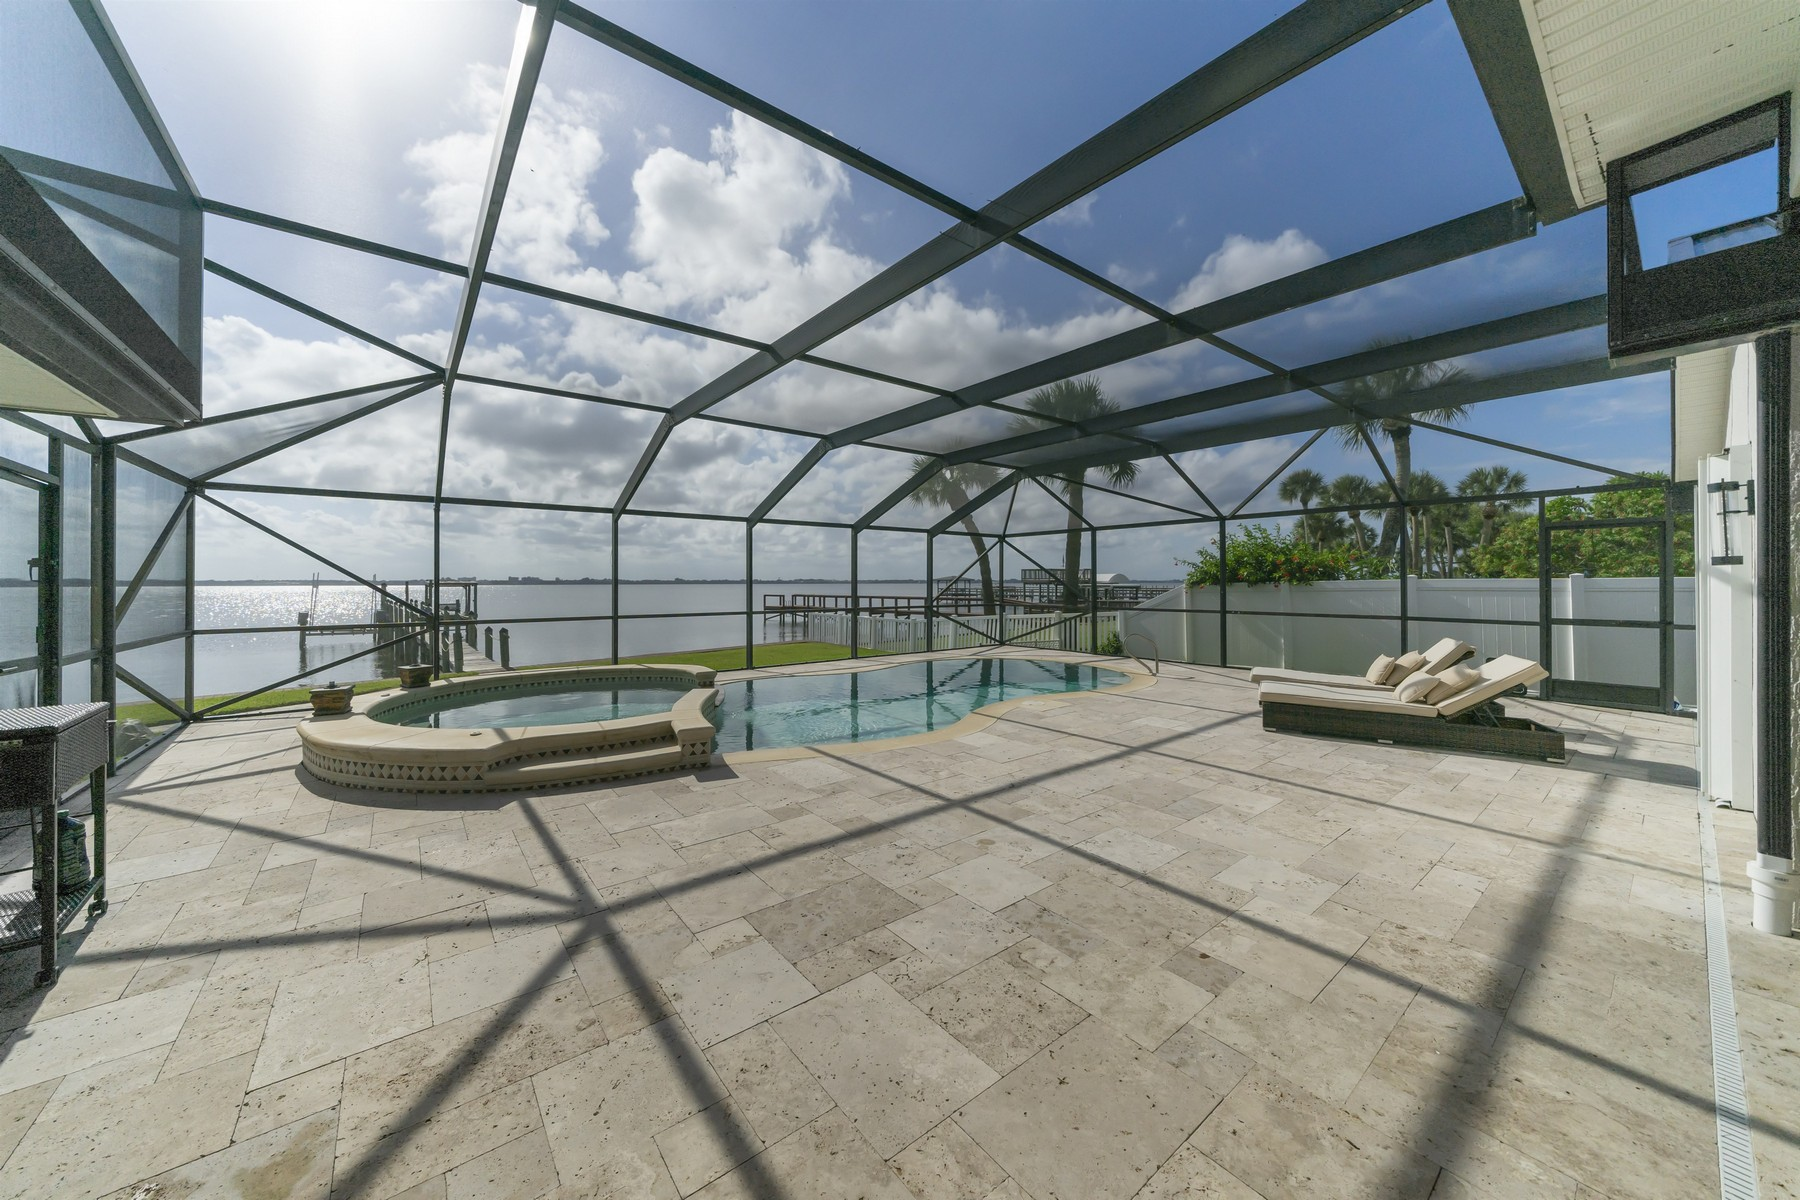 Additional photo for property listing at Wonderful Riverfront Pool Home in Quiet Neighborhood 235 Sea Crest Drive Melbourne Beach, Florida 32951 United States